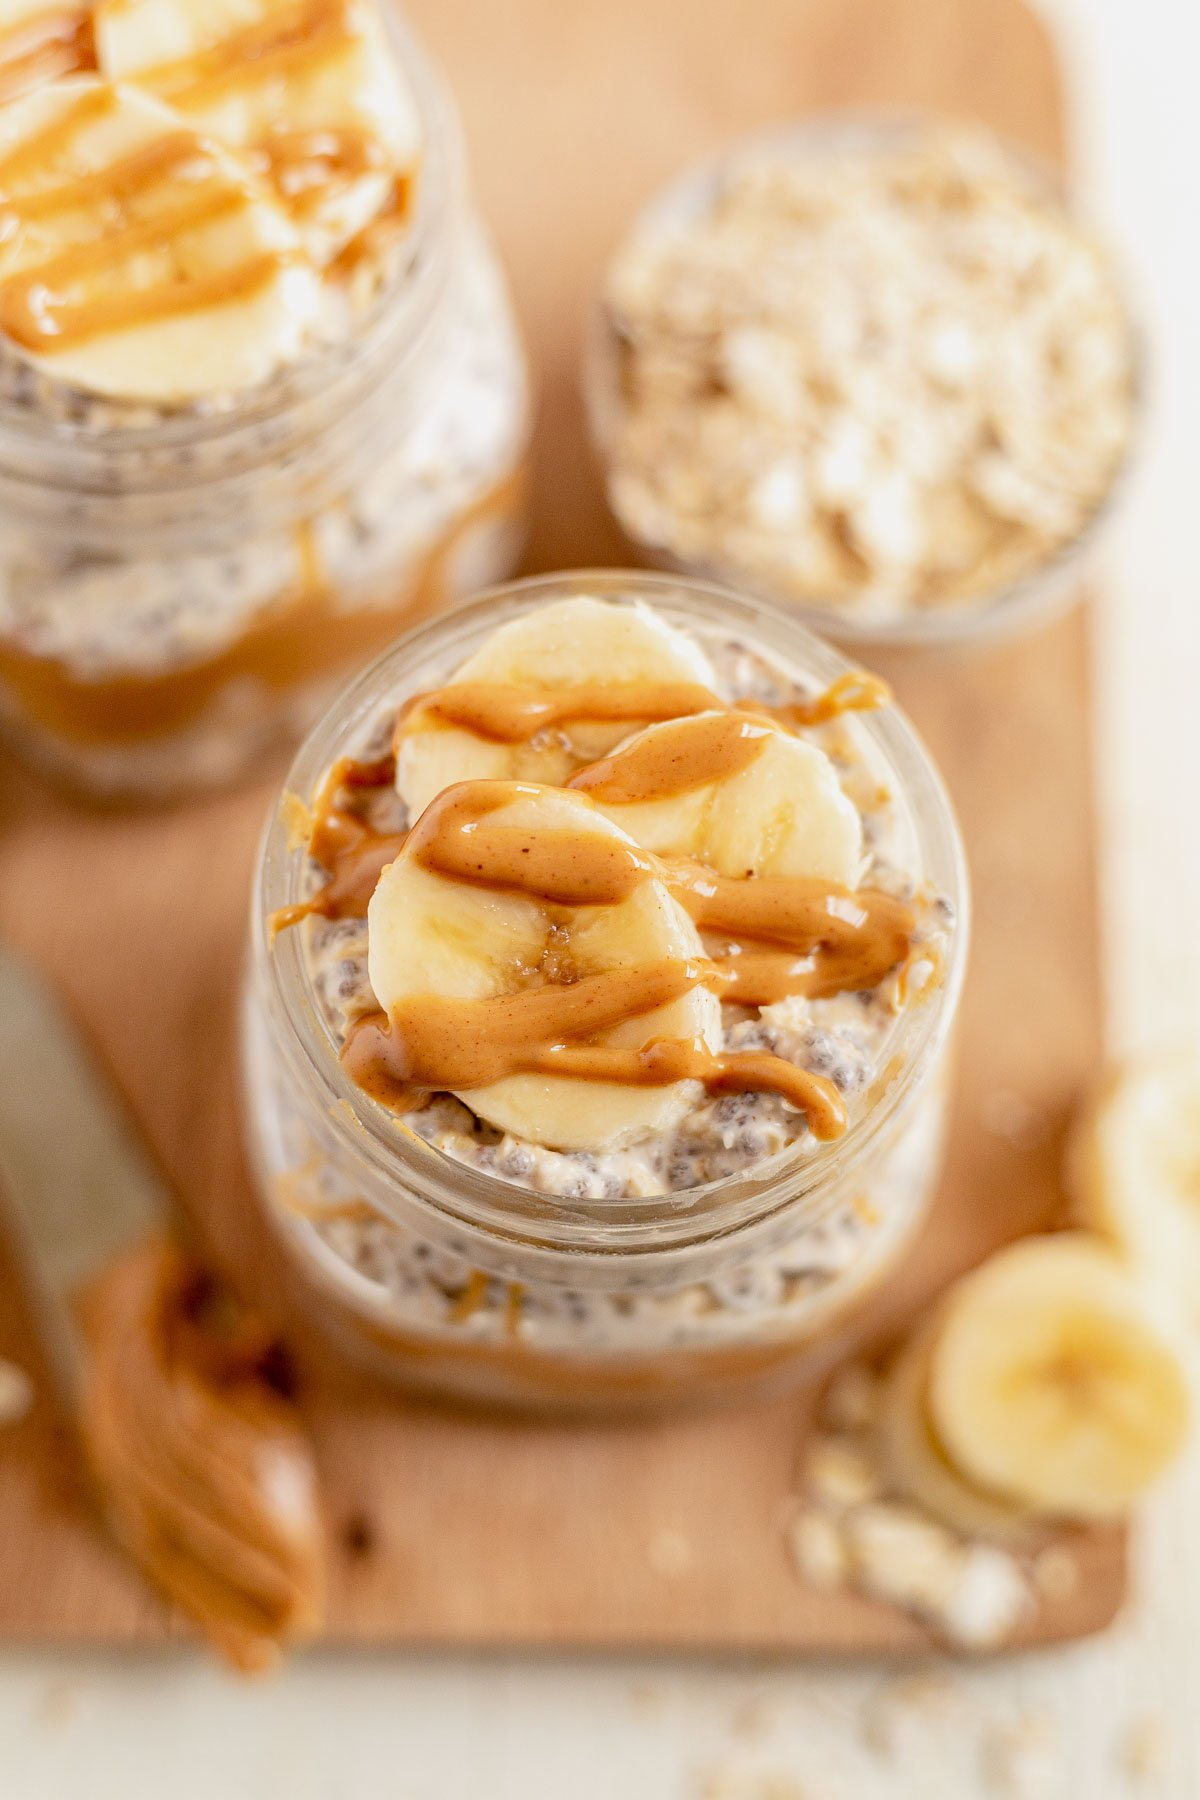 peanut butter chia overnight oats topped with sliced bananas and peanut butter drizzle